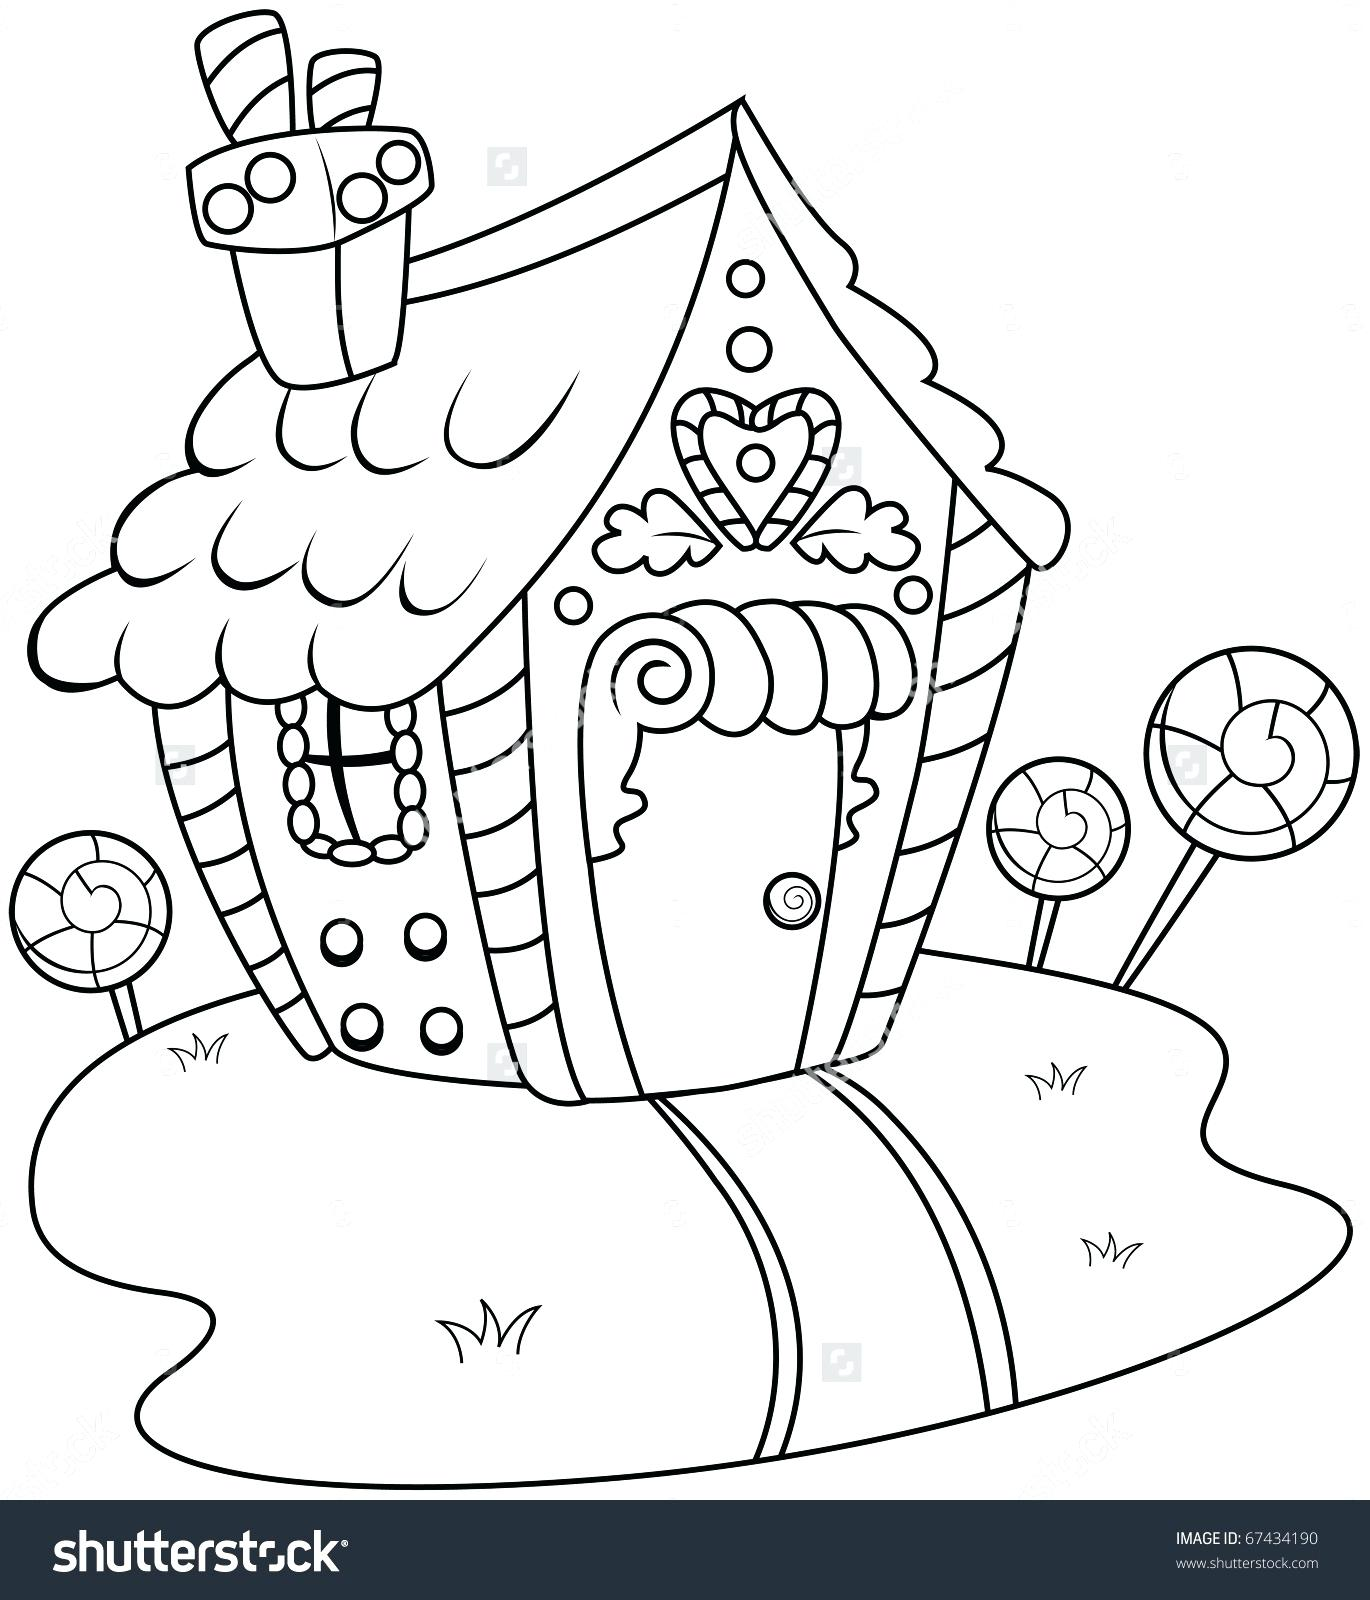 1370x1600 Coloring Quetzal Coloring Page